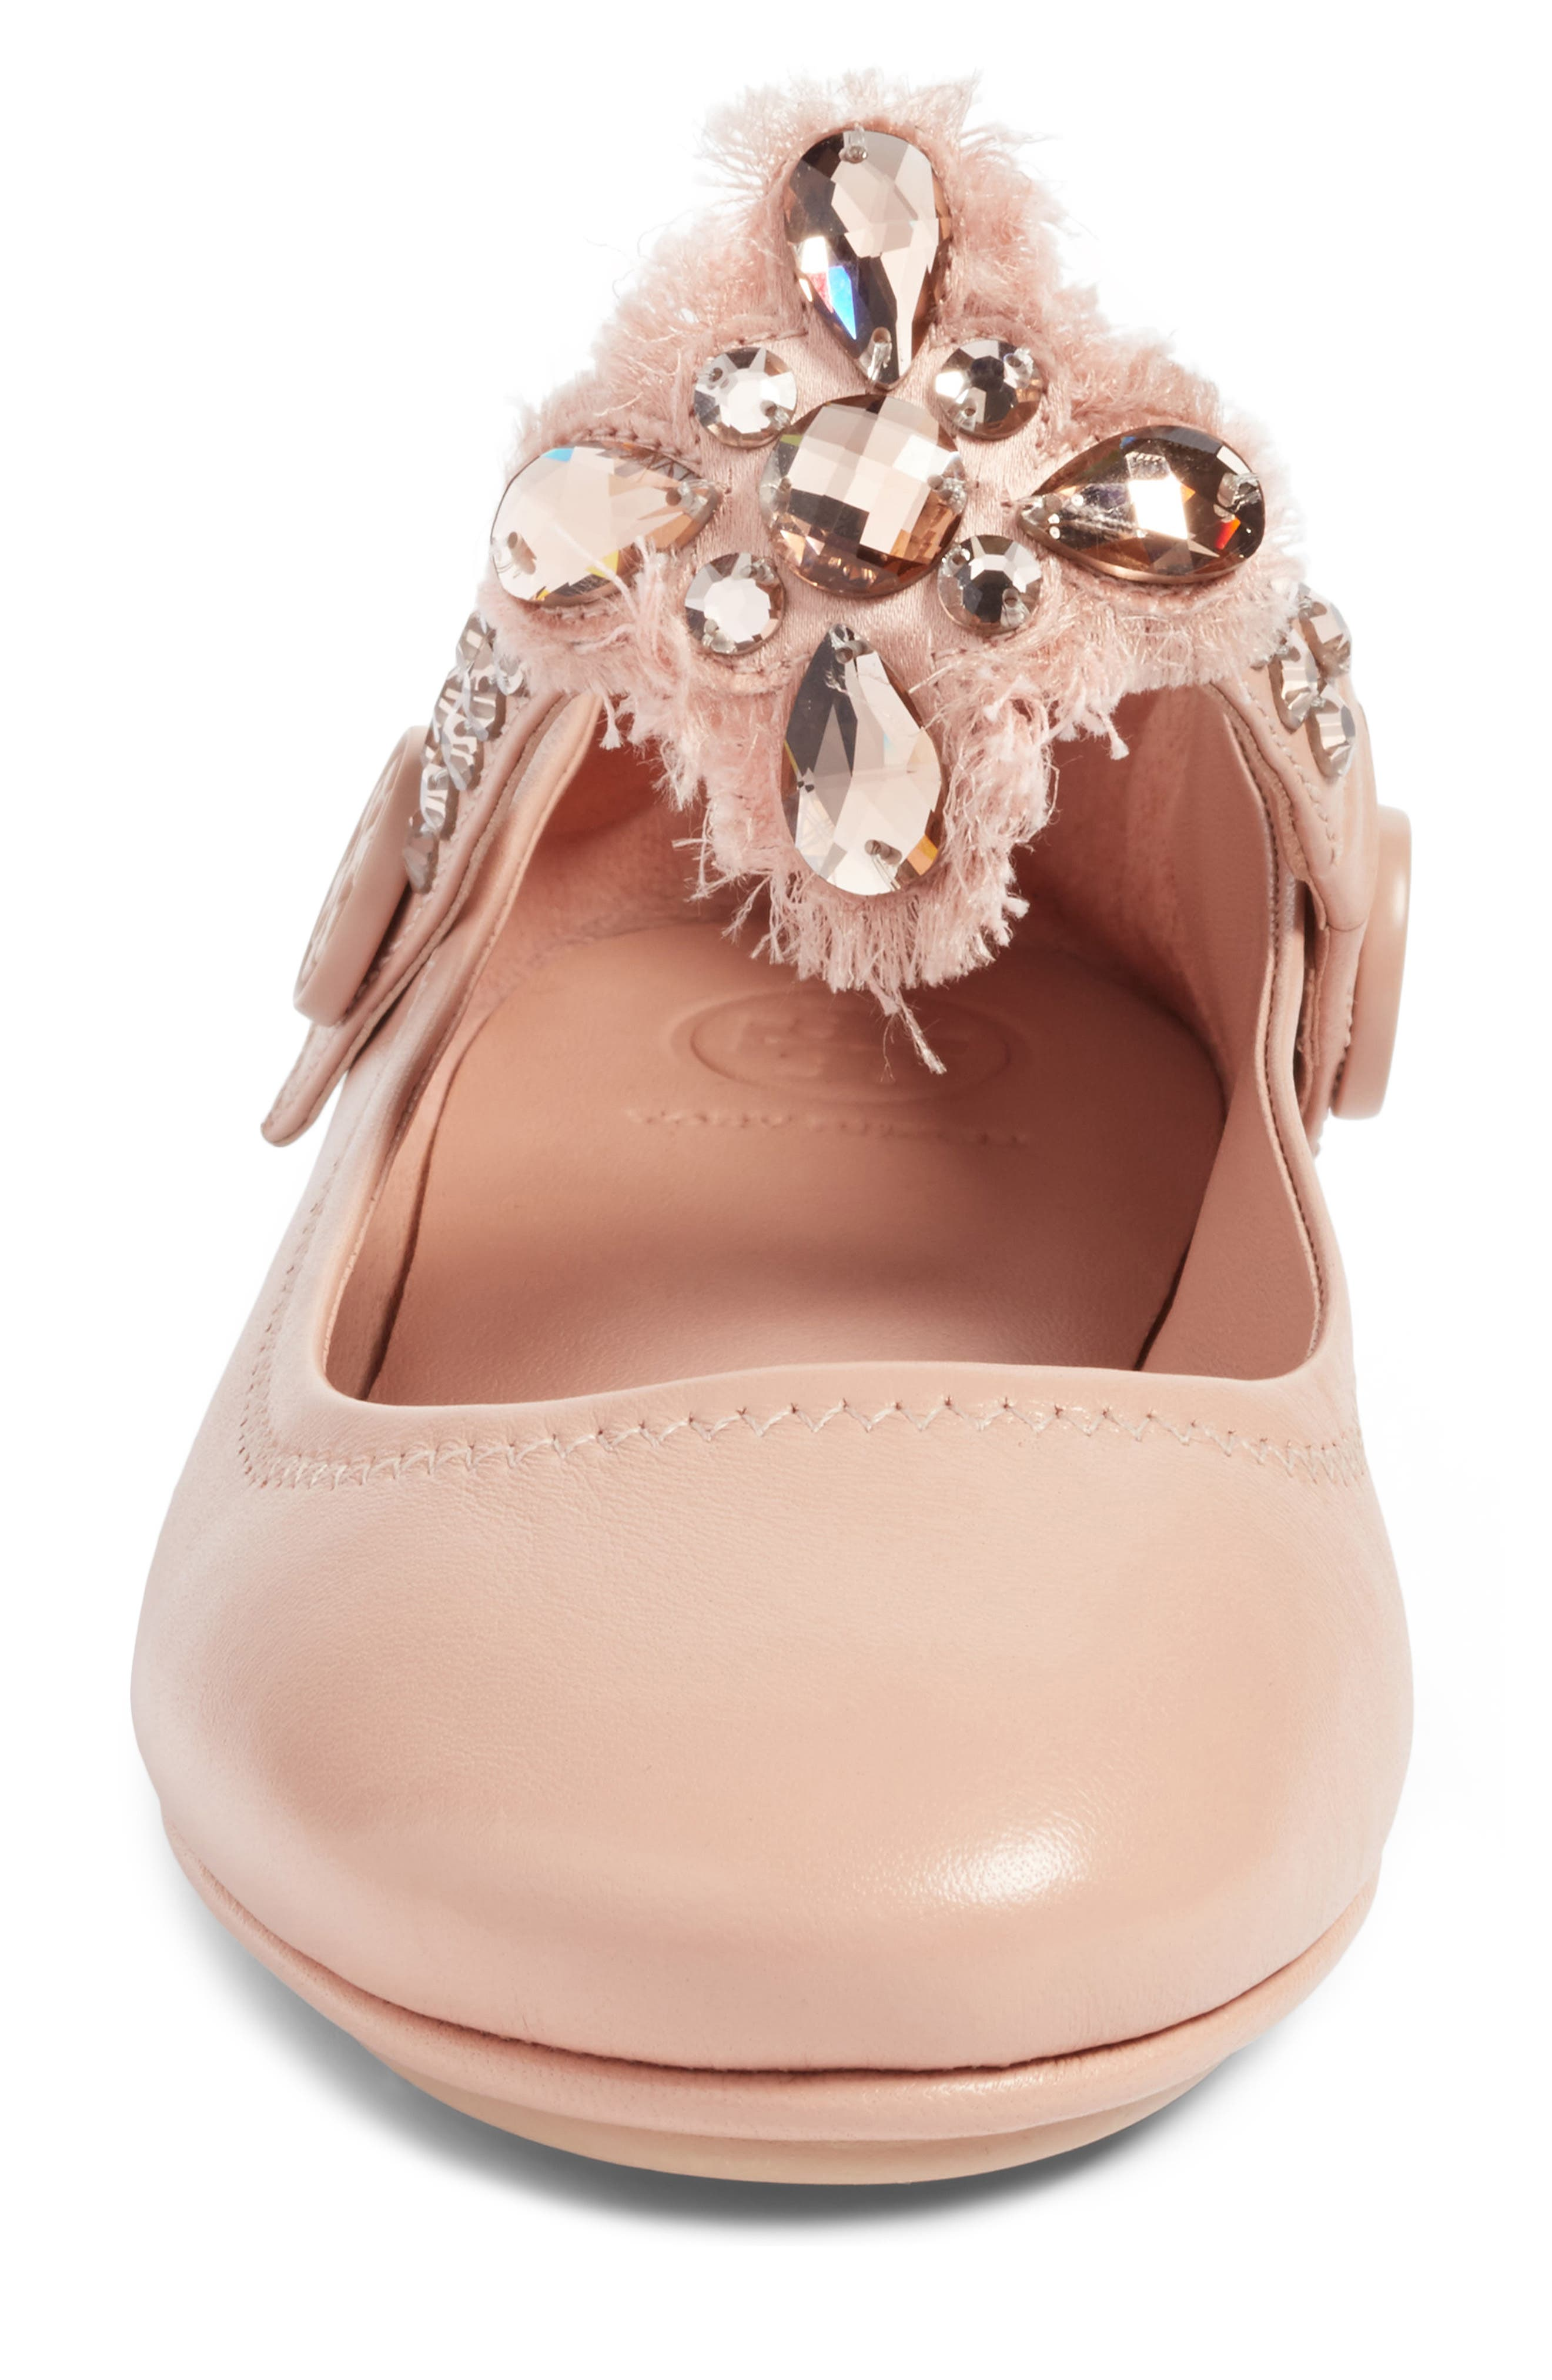 Minnie Embellished Convertible Strap Ballet Flat,                             Alternate thumbnail 15, color,